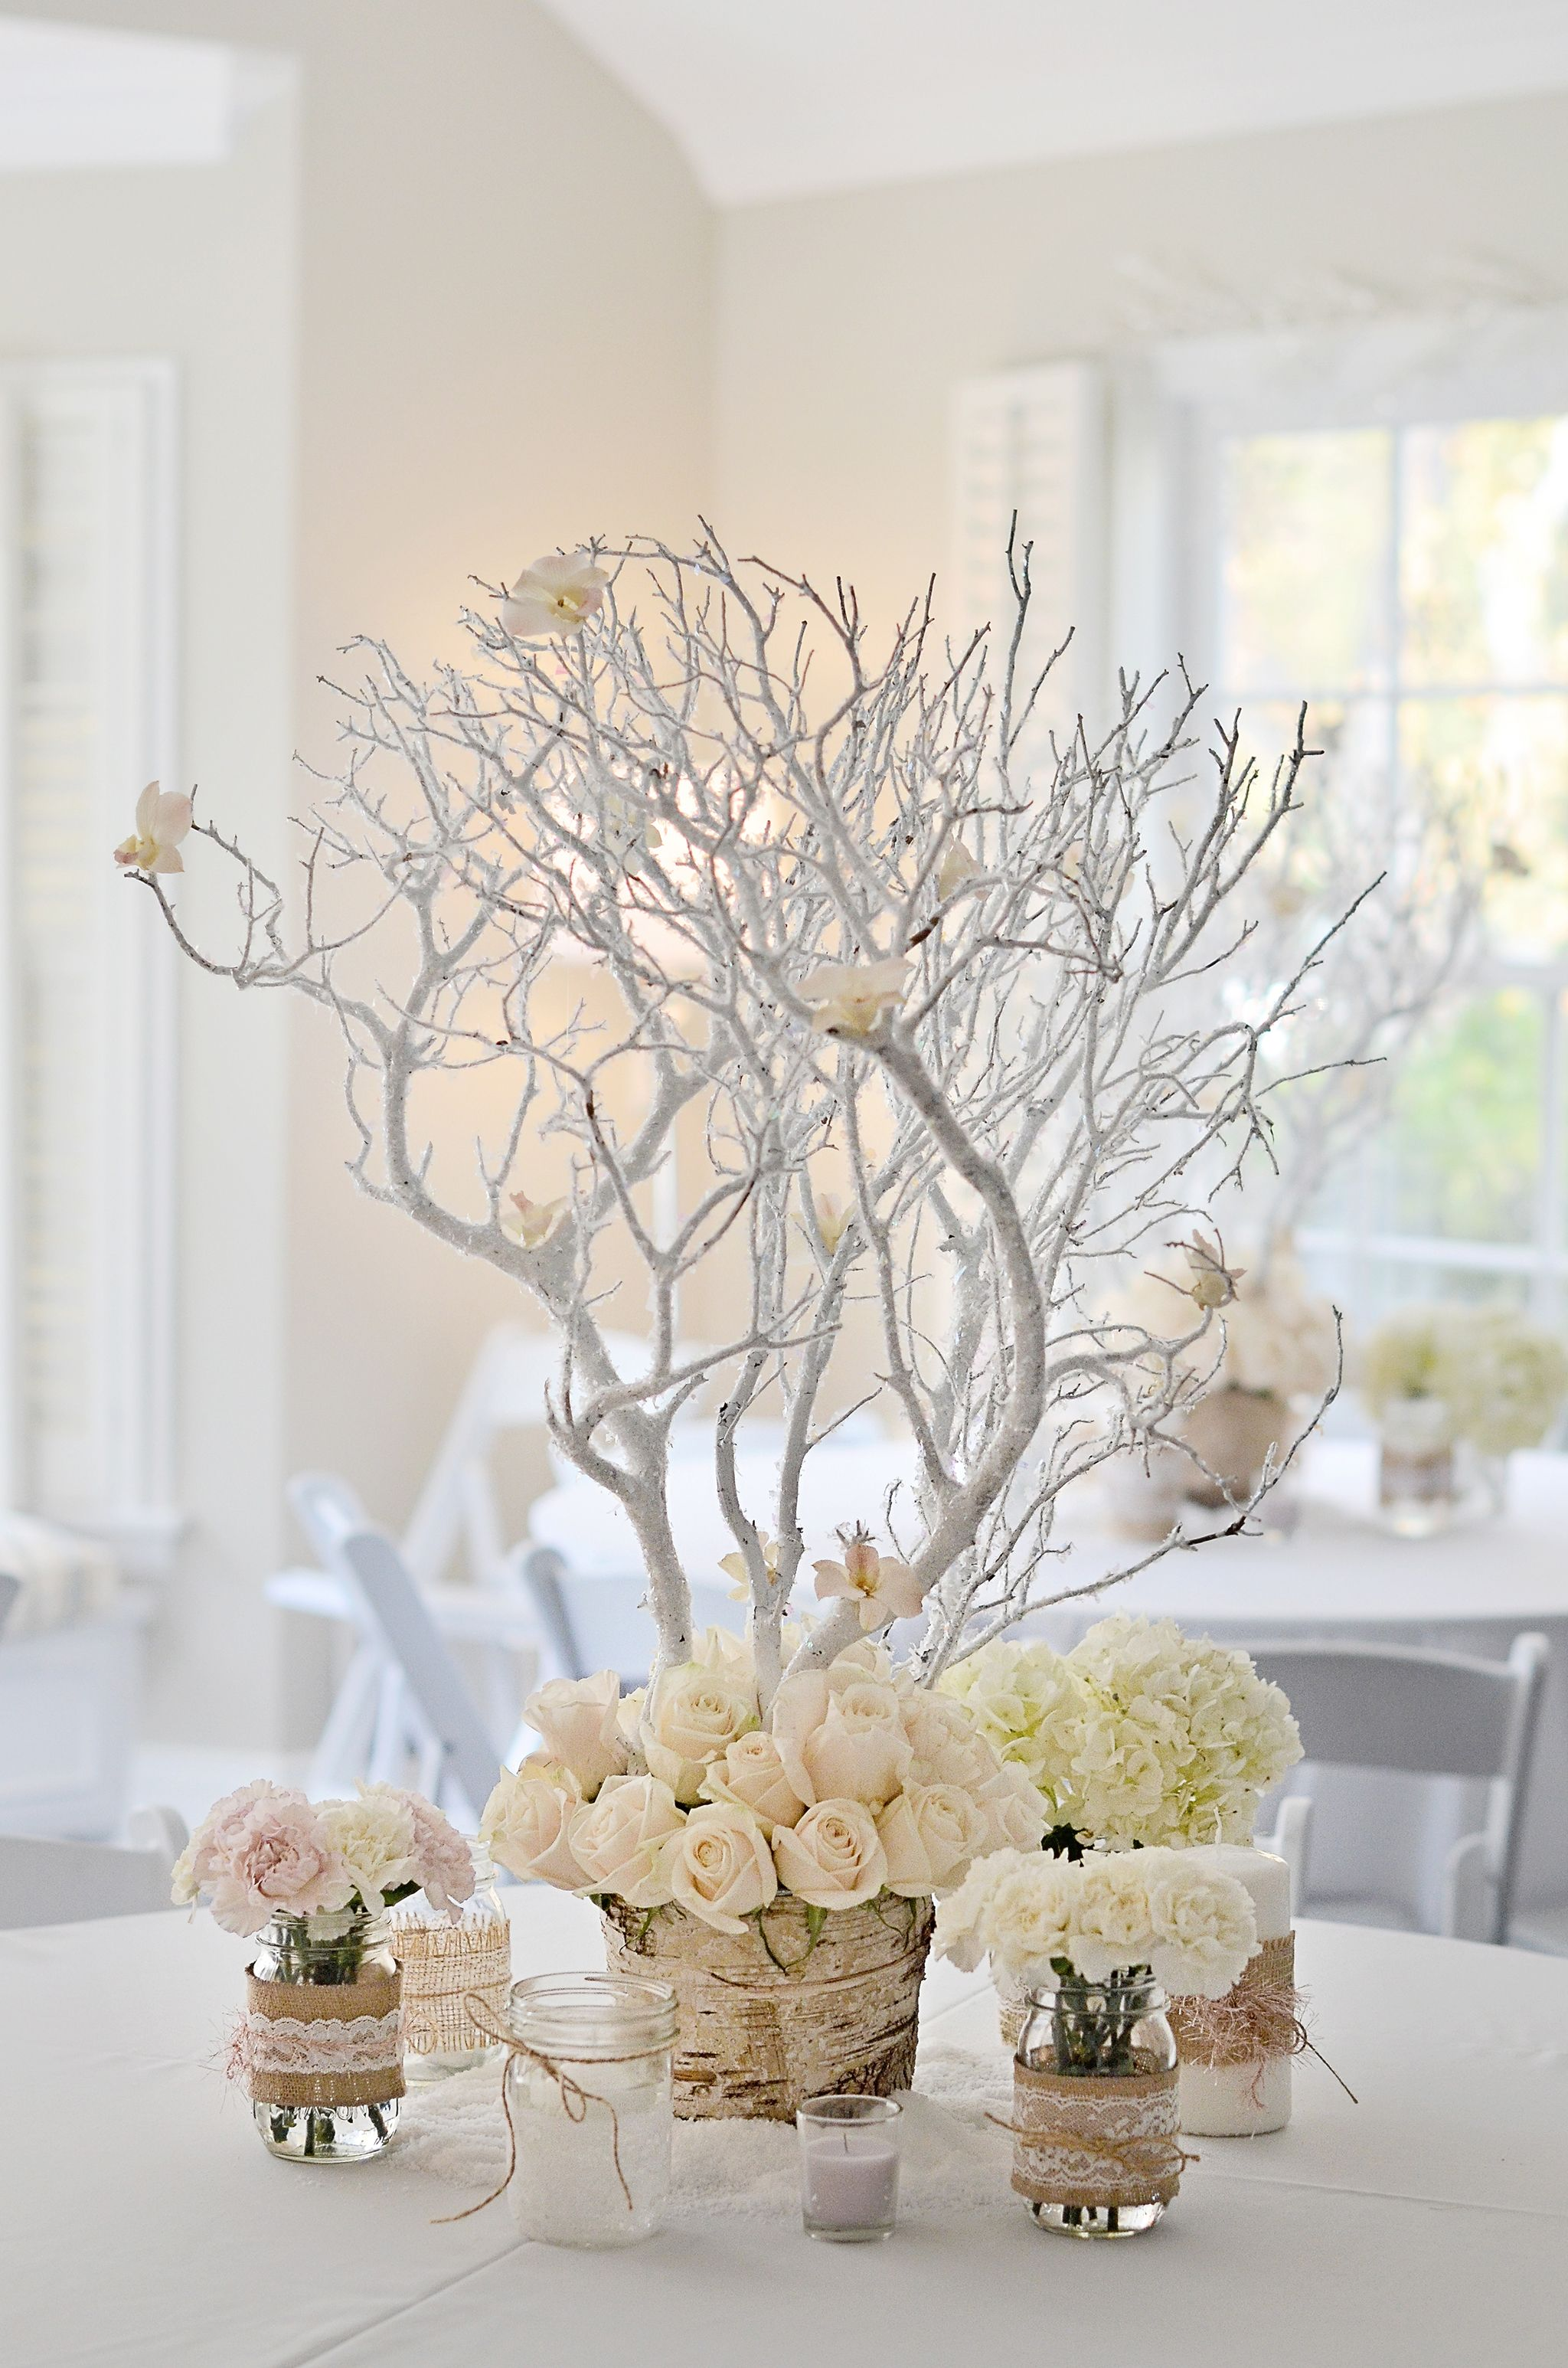 How to Plan the Perfect Winter Birthday Party | Centerpieces, Winter ...